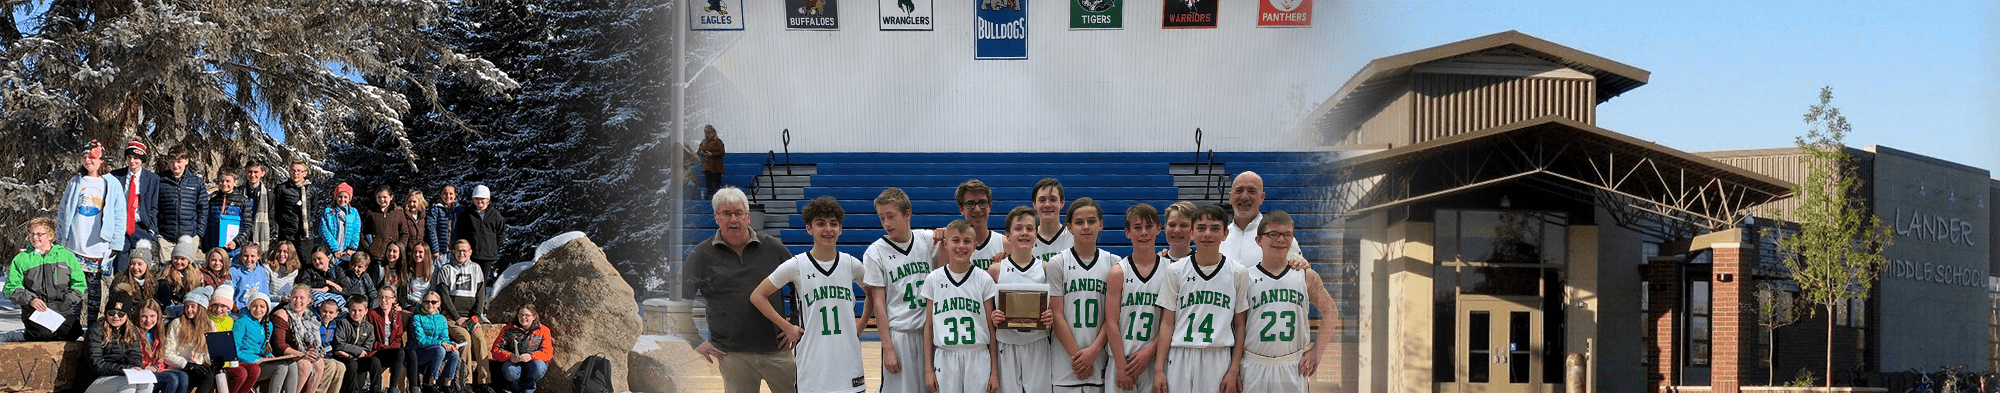 Basketball players pose with coaches and an award, students pose in nature, front view of Lander Middle School